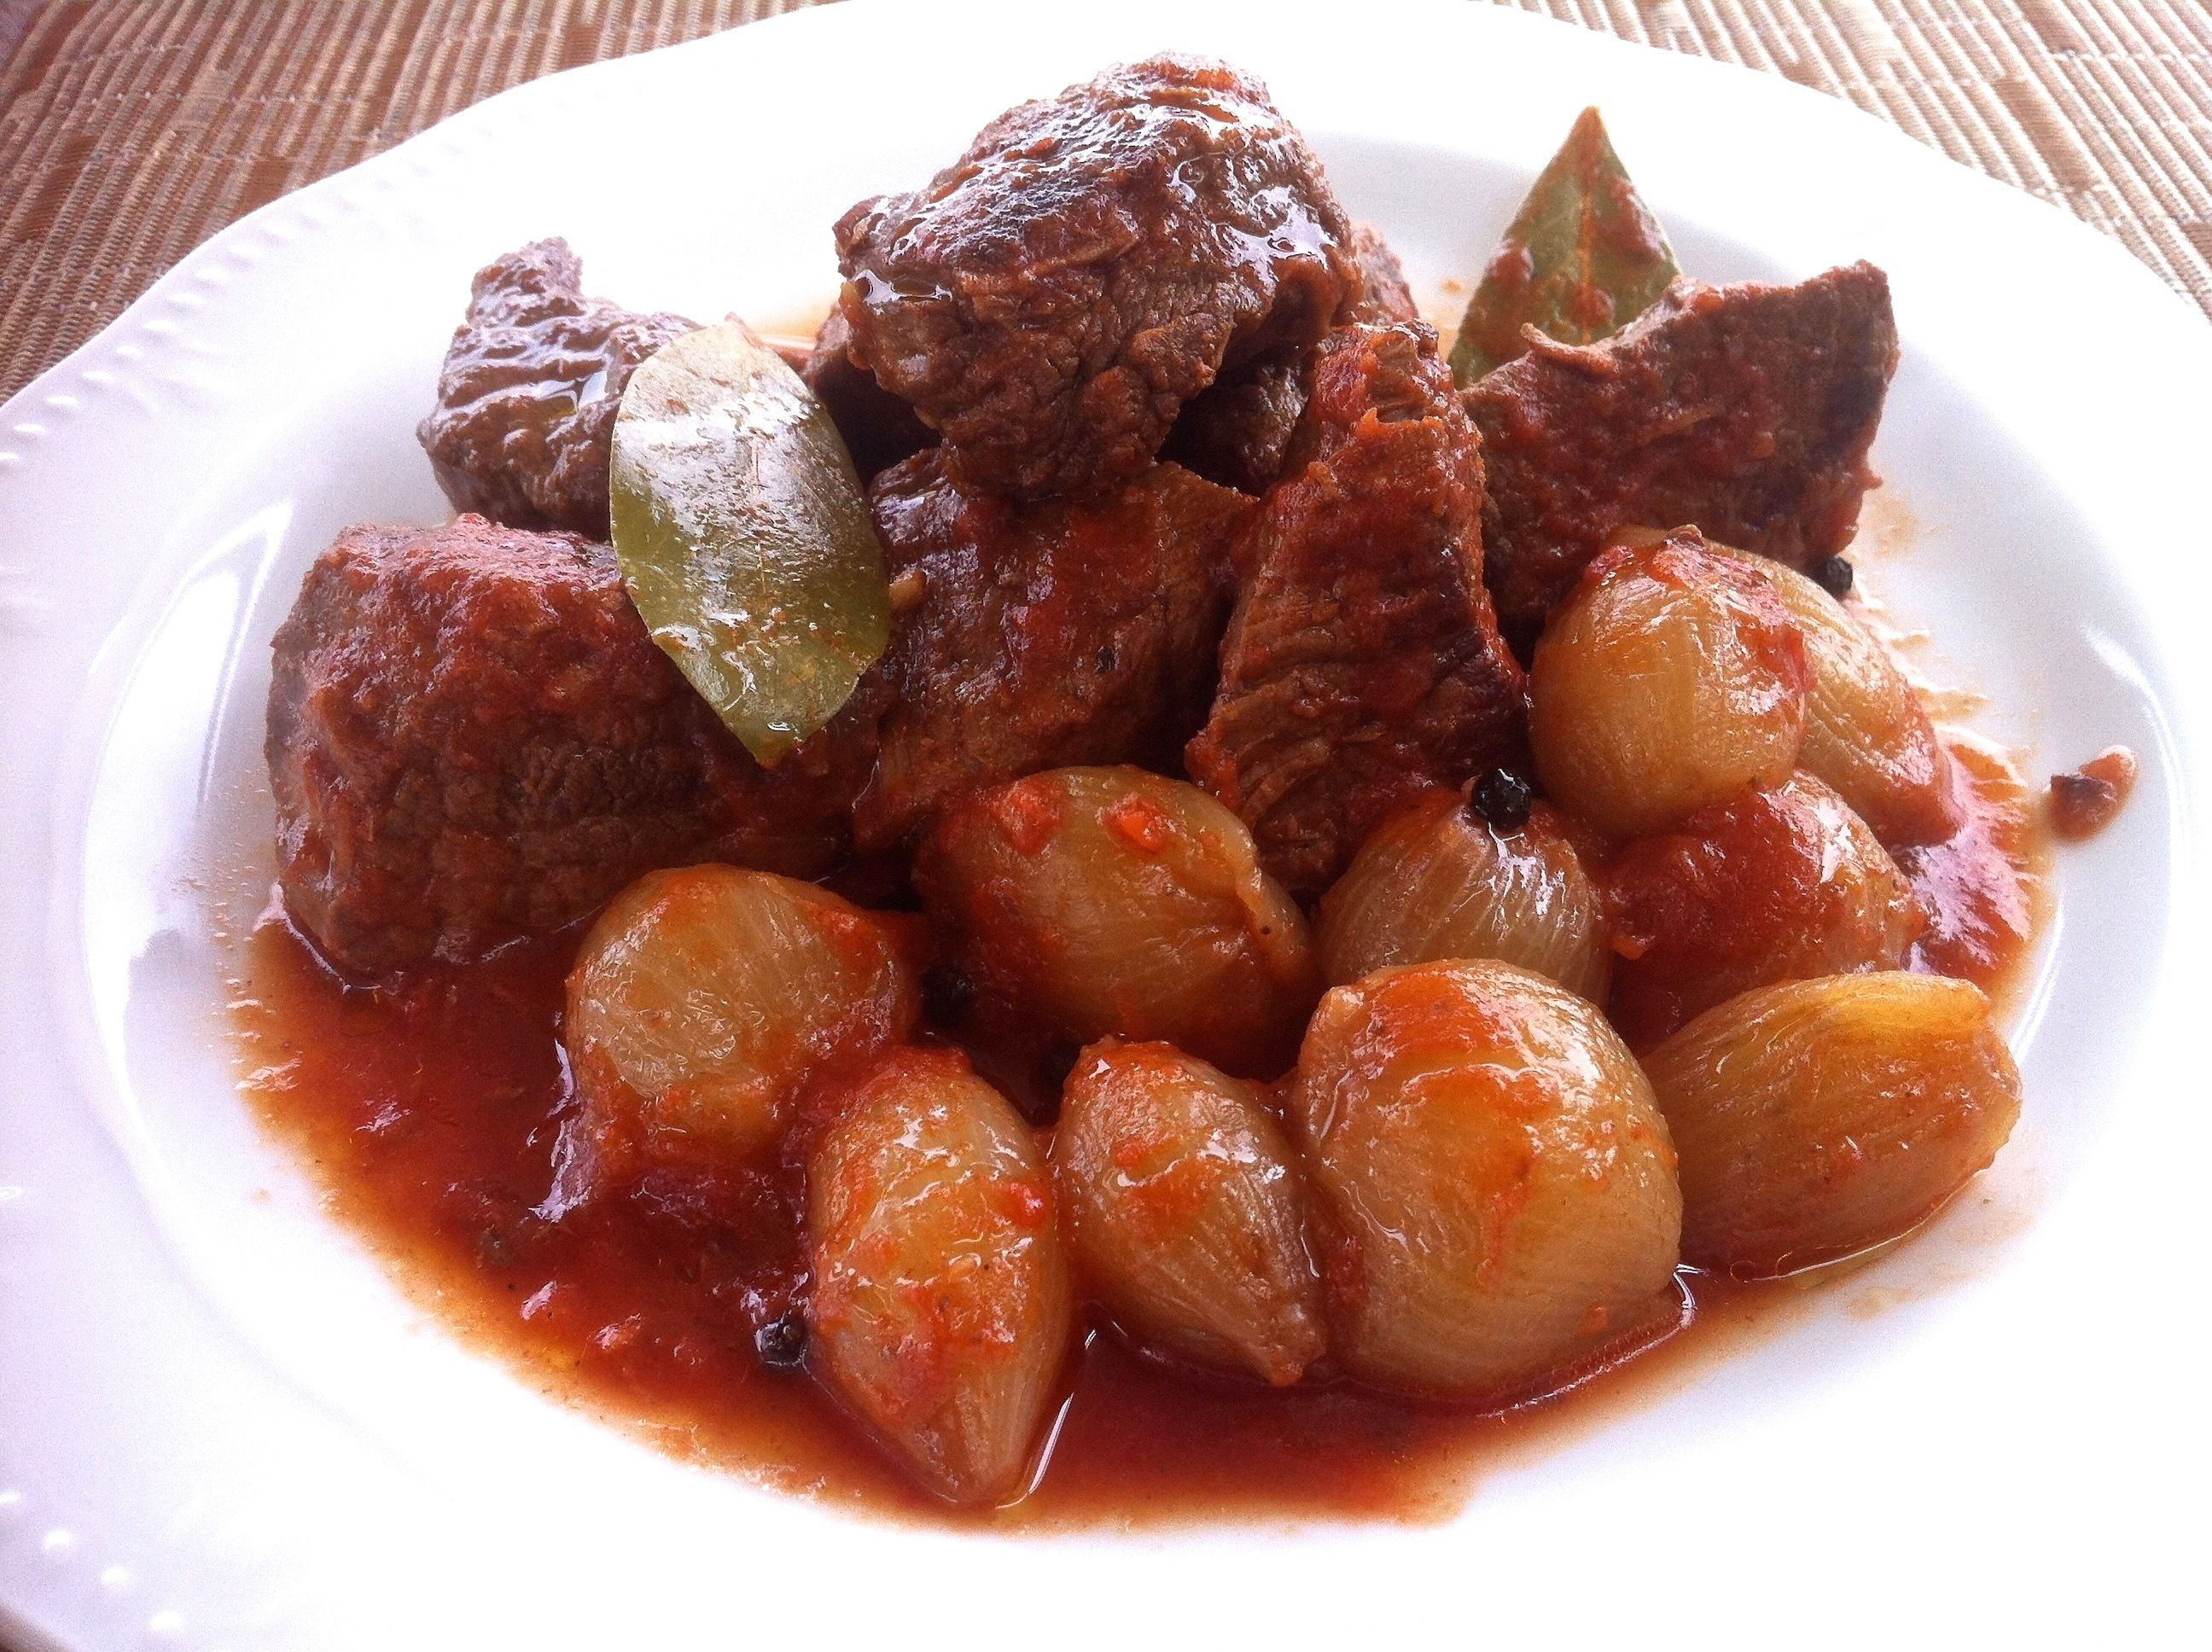 """""""Stifado is a Greek beef stew and my all-time favorite Greek dish,"""" says waz71. """"Chunks of tender beef are cooked with shallots in a rich aromatic tomato sauce. Serve with boiled rice and a good supply of crusty bread to mop up the rich sauce!"""""""